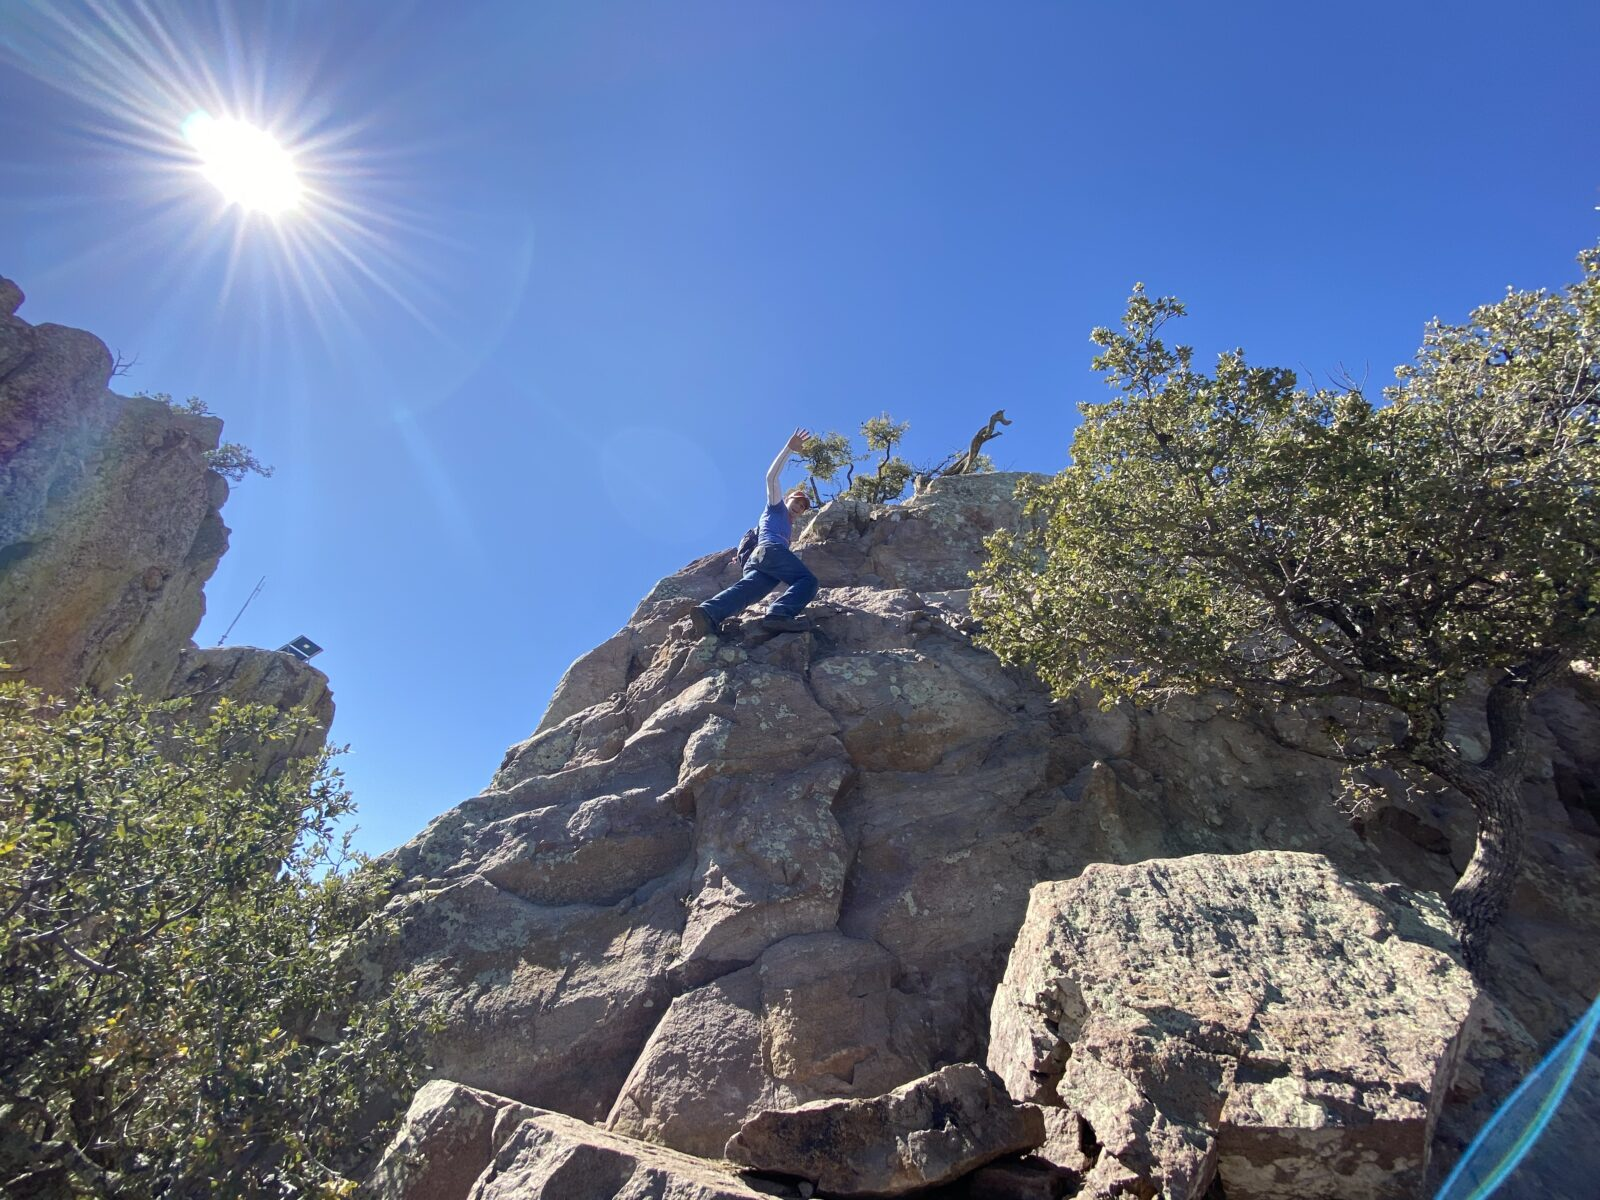 To reach the top of Emory Peak you must be able to climb the rocky pinnacle at Big Bend National Park.